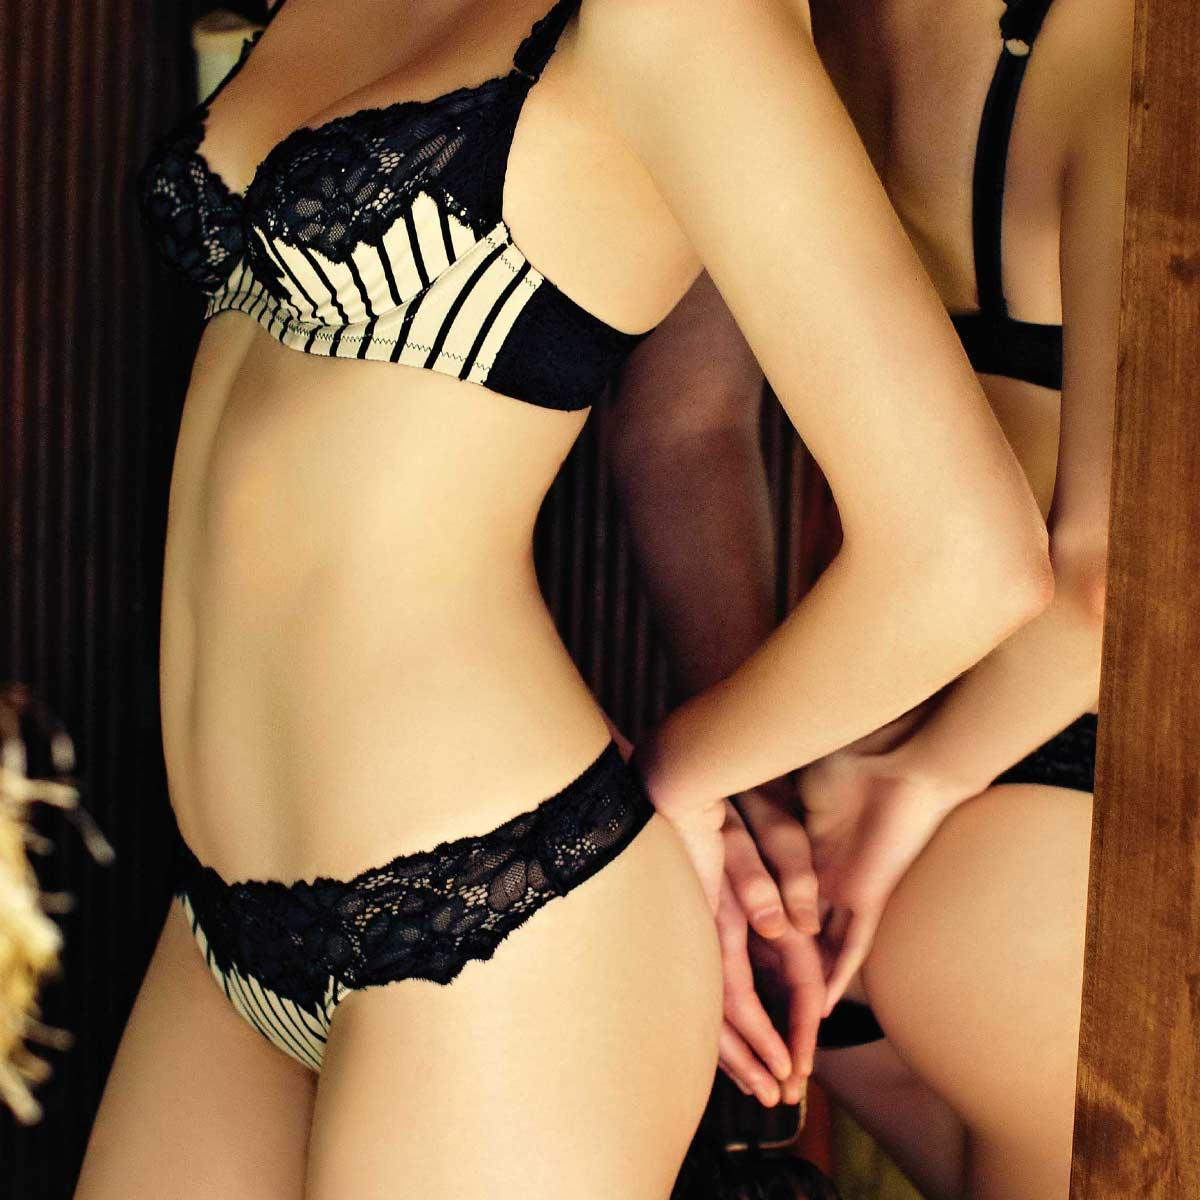 Buy 1 get 20% off or Buy 3 get 50% off On Selected Sexy Lace Thong @ Eve's Temptation